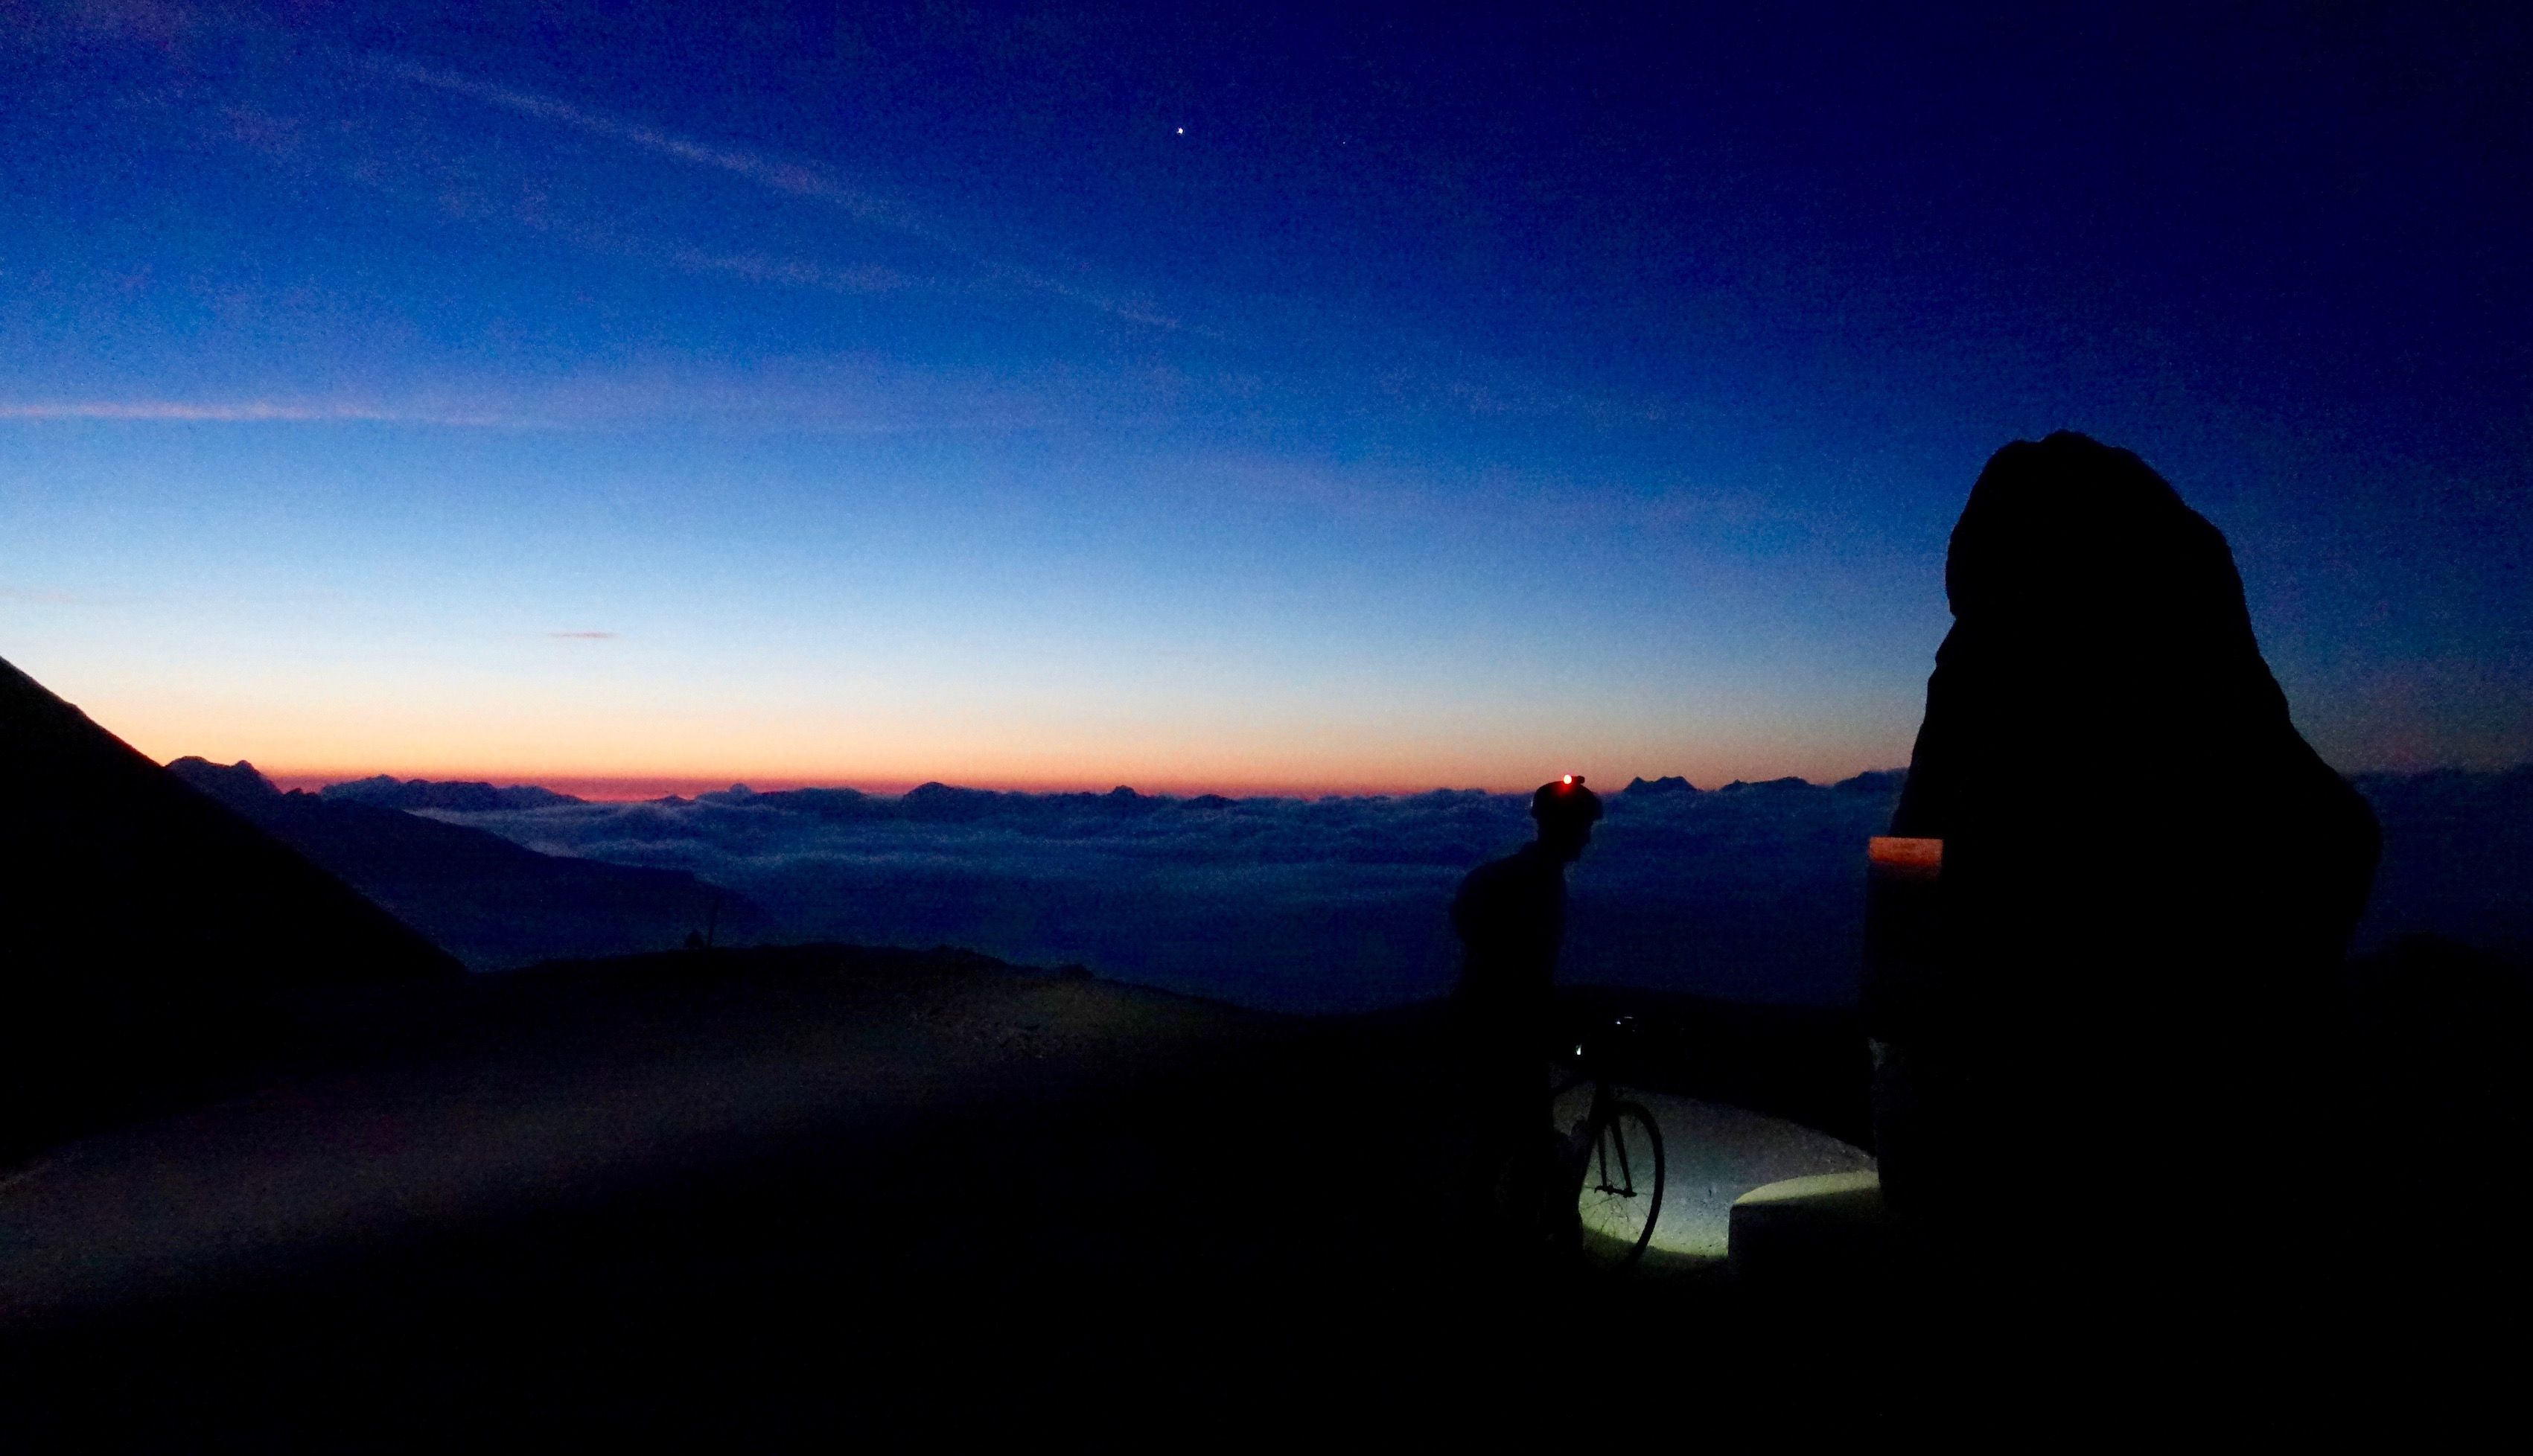 Kev on the summit at 5.10am. This made getting up at 2.00am all worthwhile!